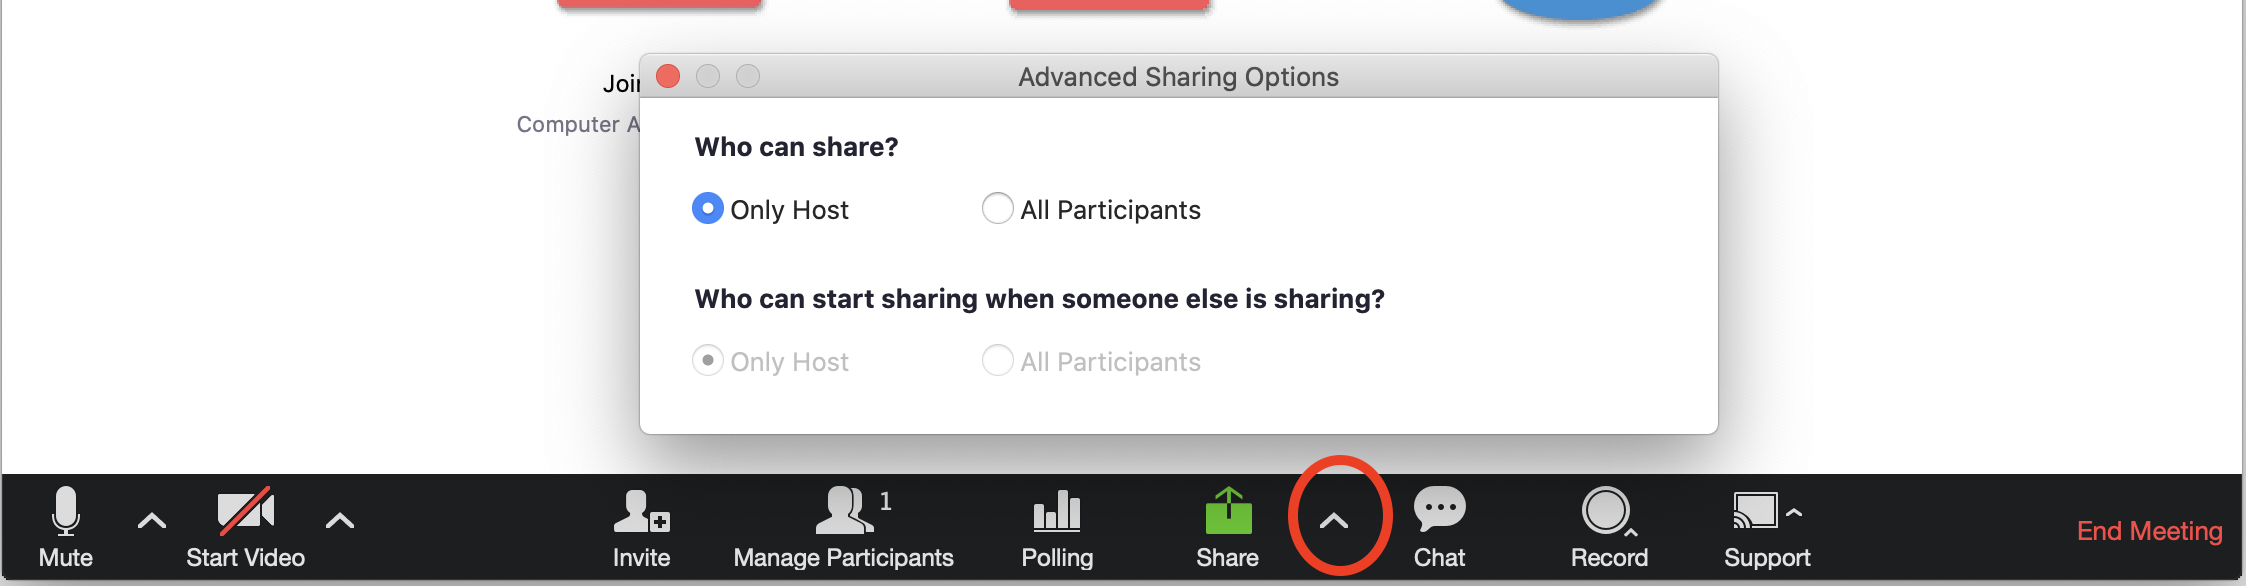 screenshot of Advanced Sharing options in Zoom